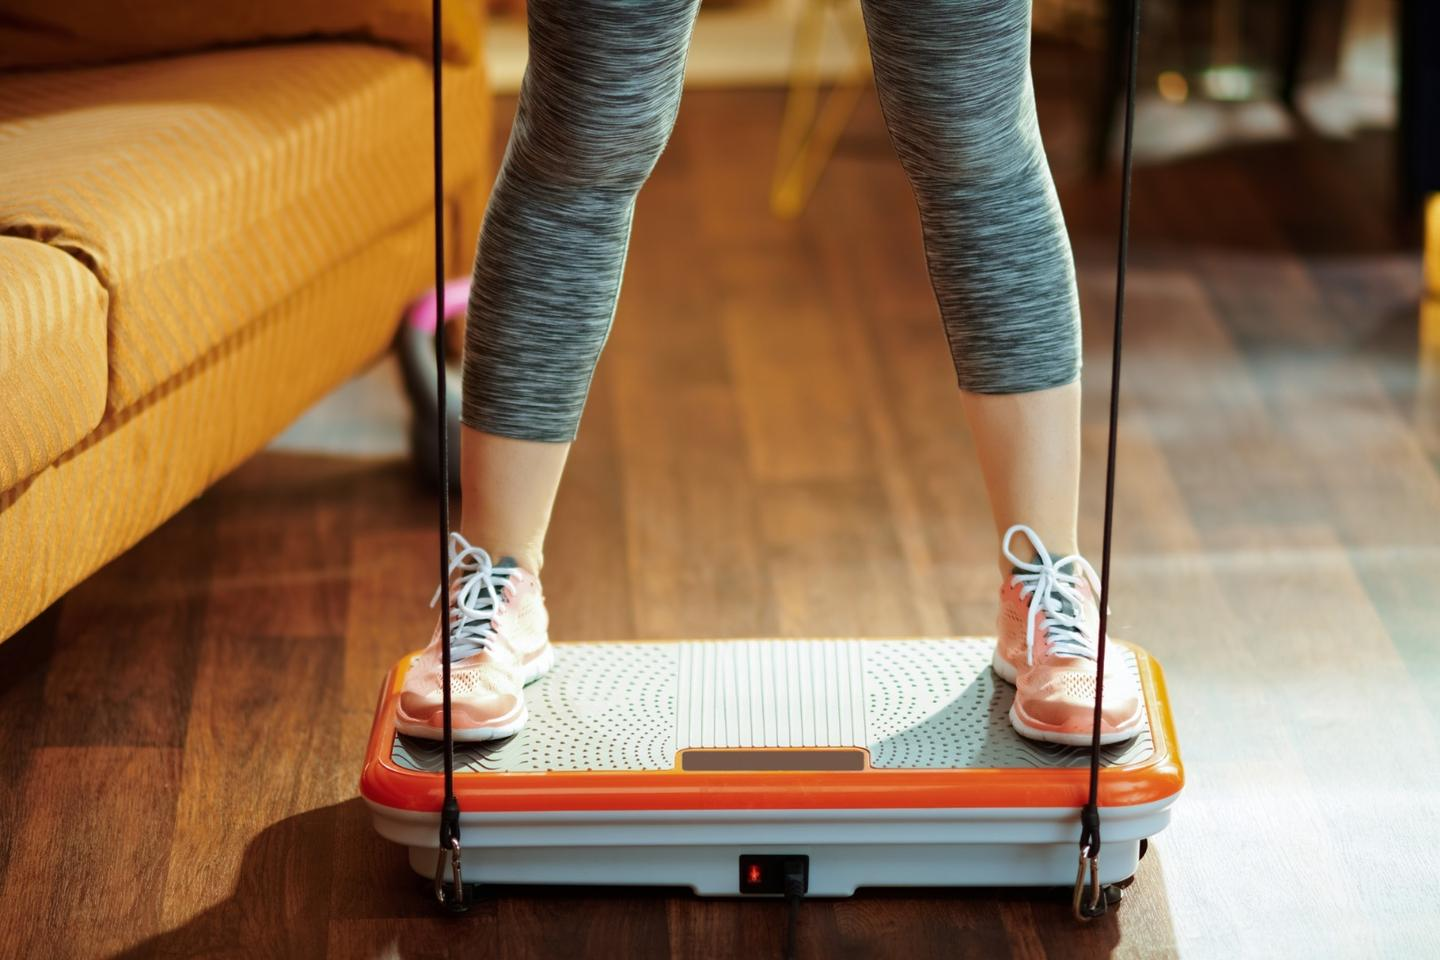 A new study has found an association between whole body vibration therapy and an increase in beneficial gut bacteria and anti-inflammatory molecules in mice